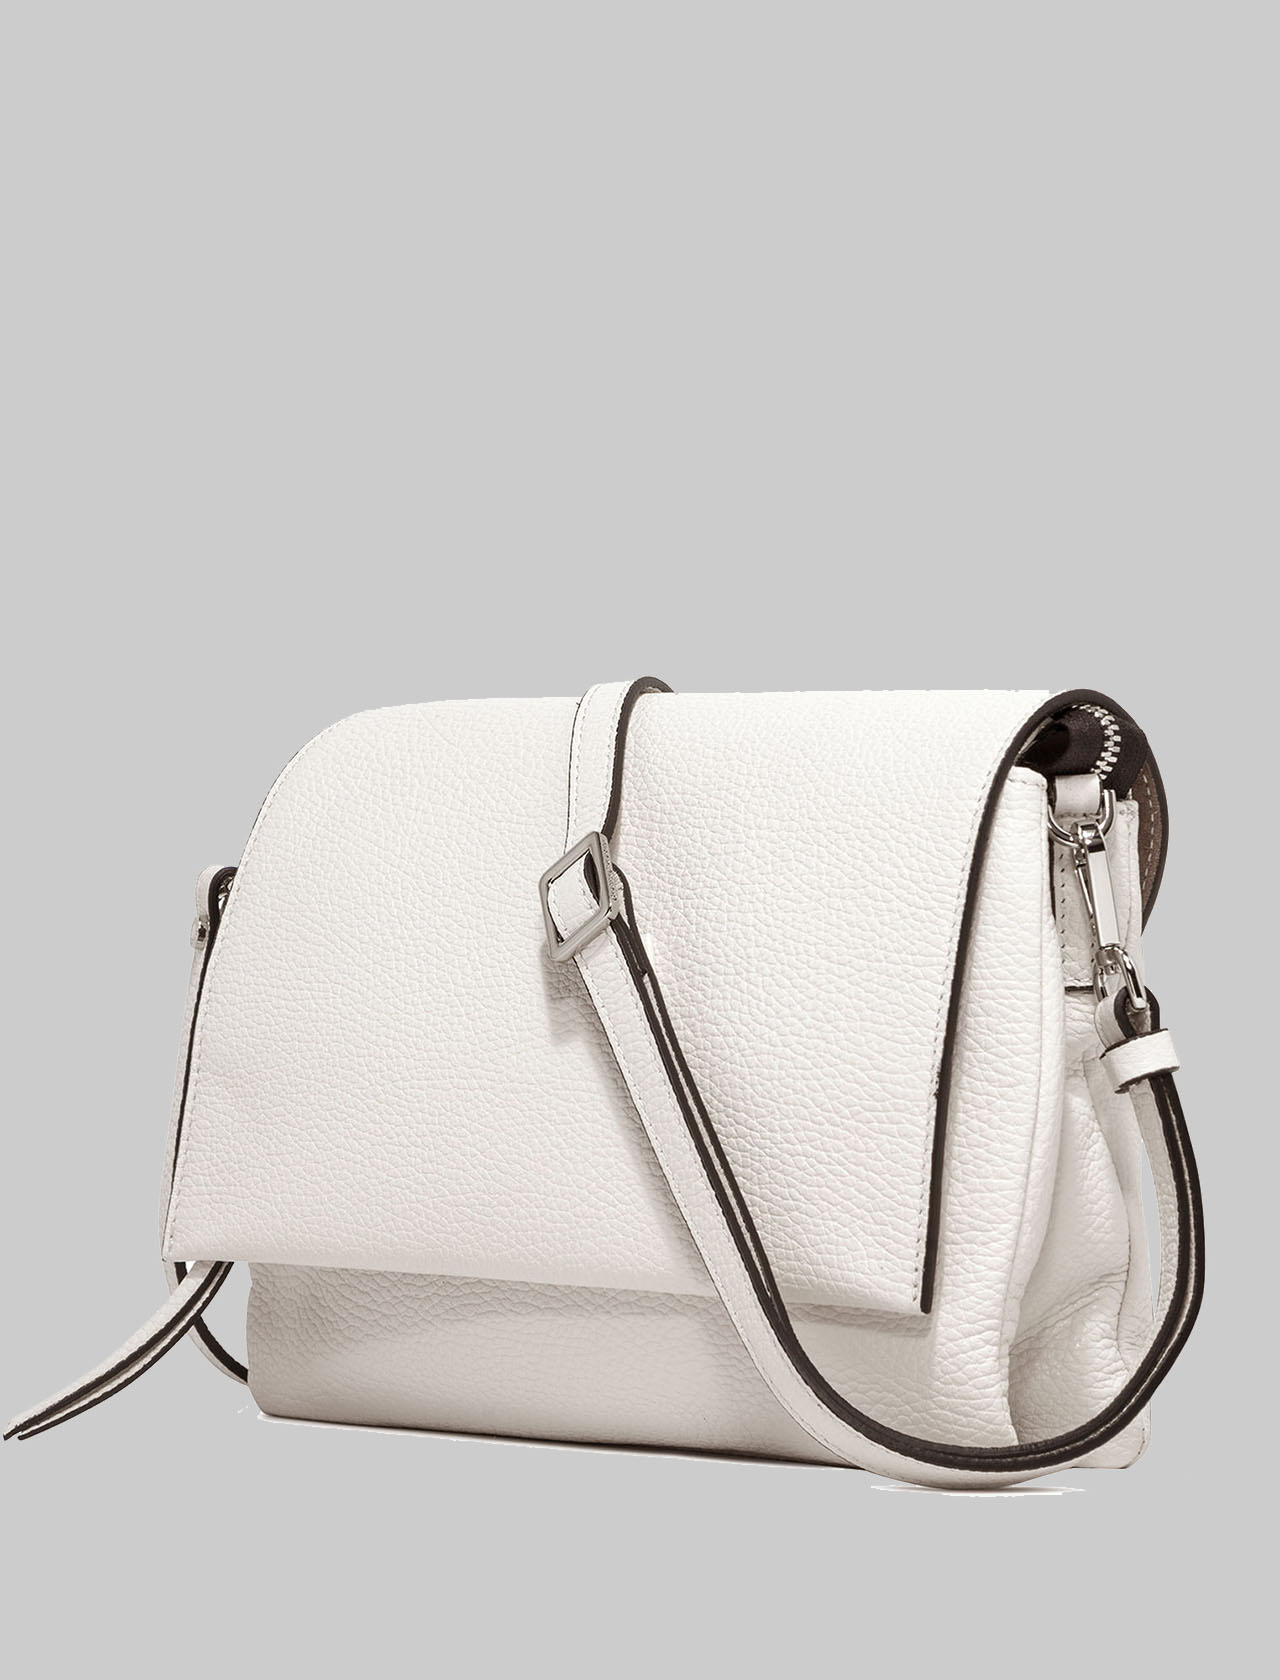 Three Shoulder Bag Woman In Cream Leather With Long Flap And Removable Shoulder Strap Gianni Chiarini | Bags and backpacks | BS43643890